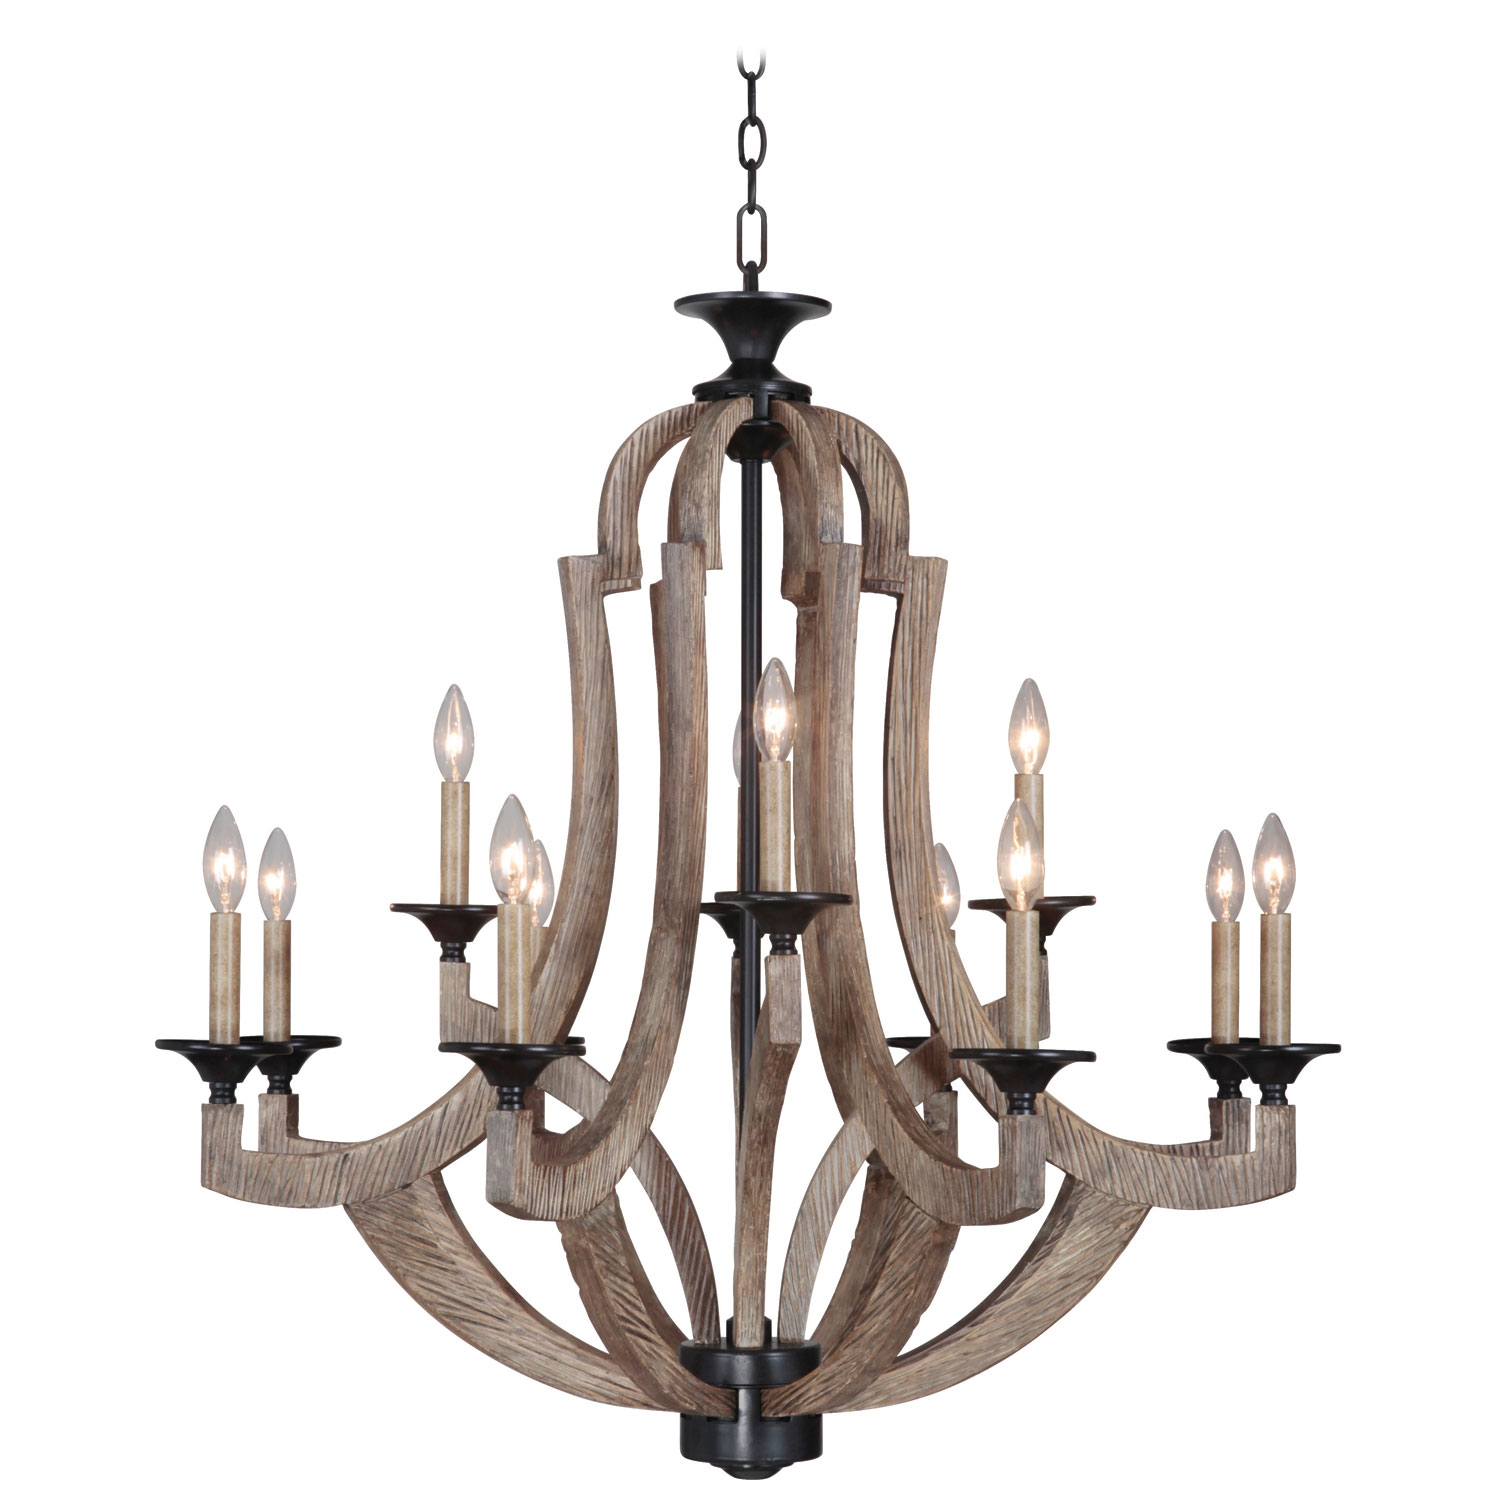 Chandeliers Crystal Modern Iron Shab Chic Country French Inside Large Iron Chandeliers (Image 6 of 15)